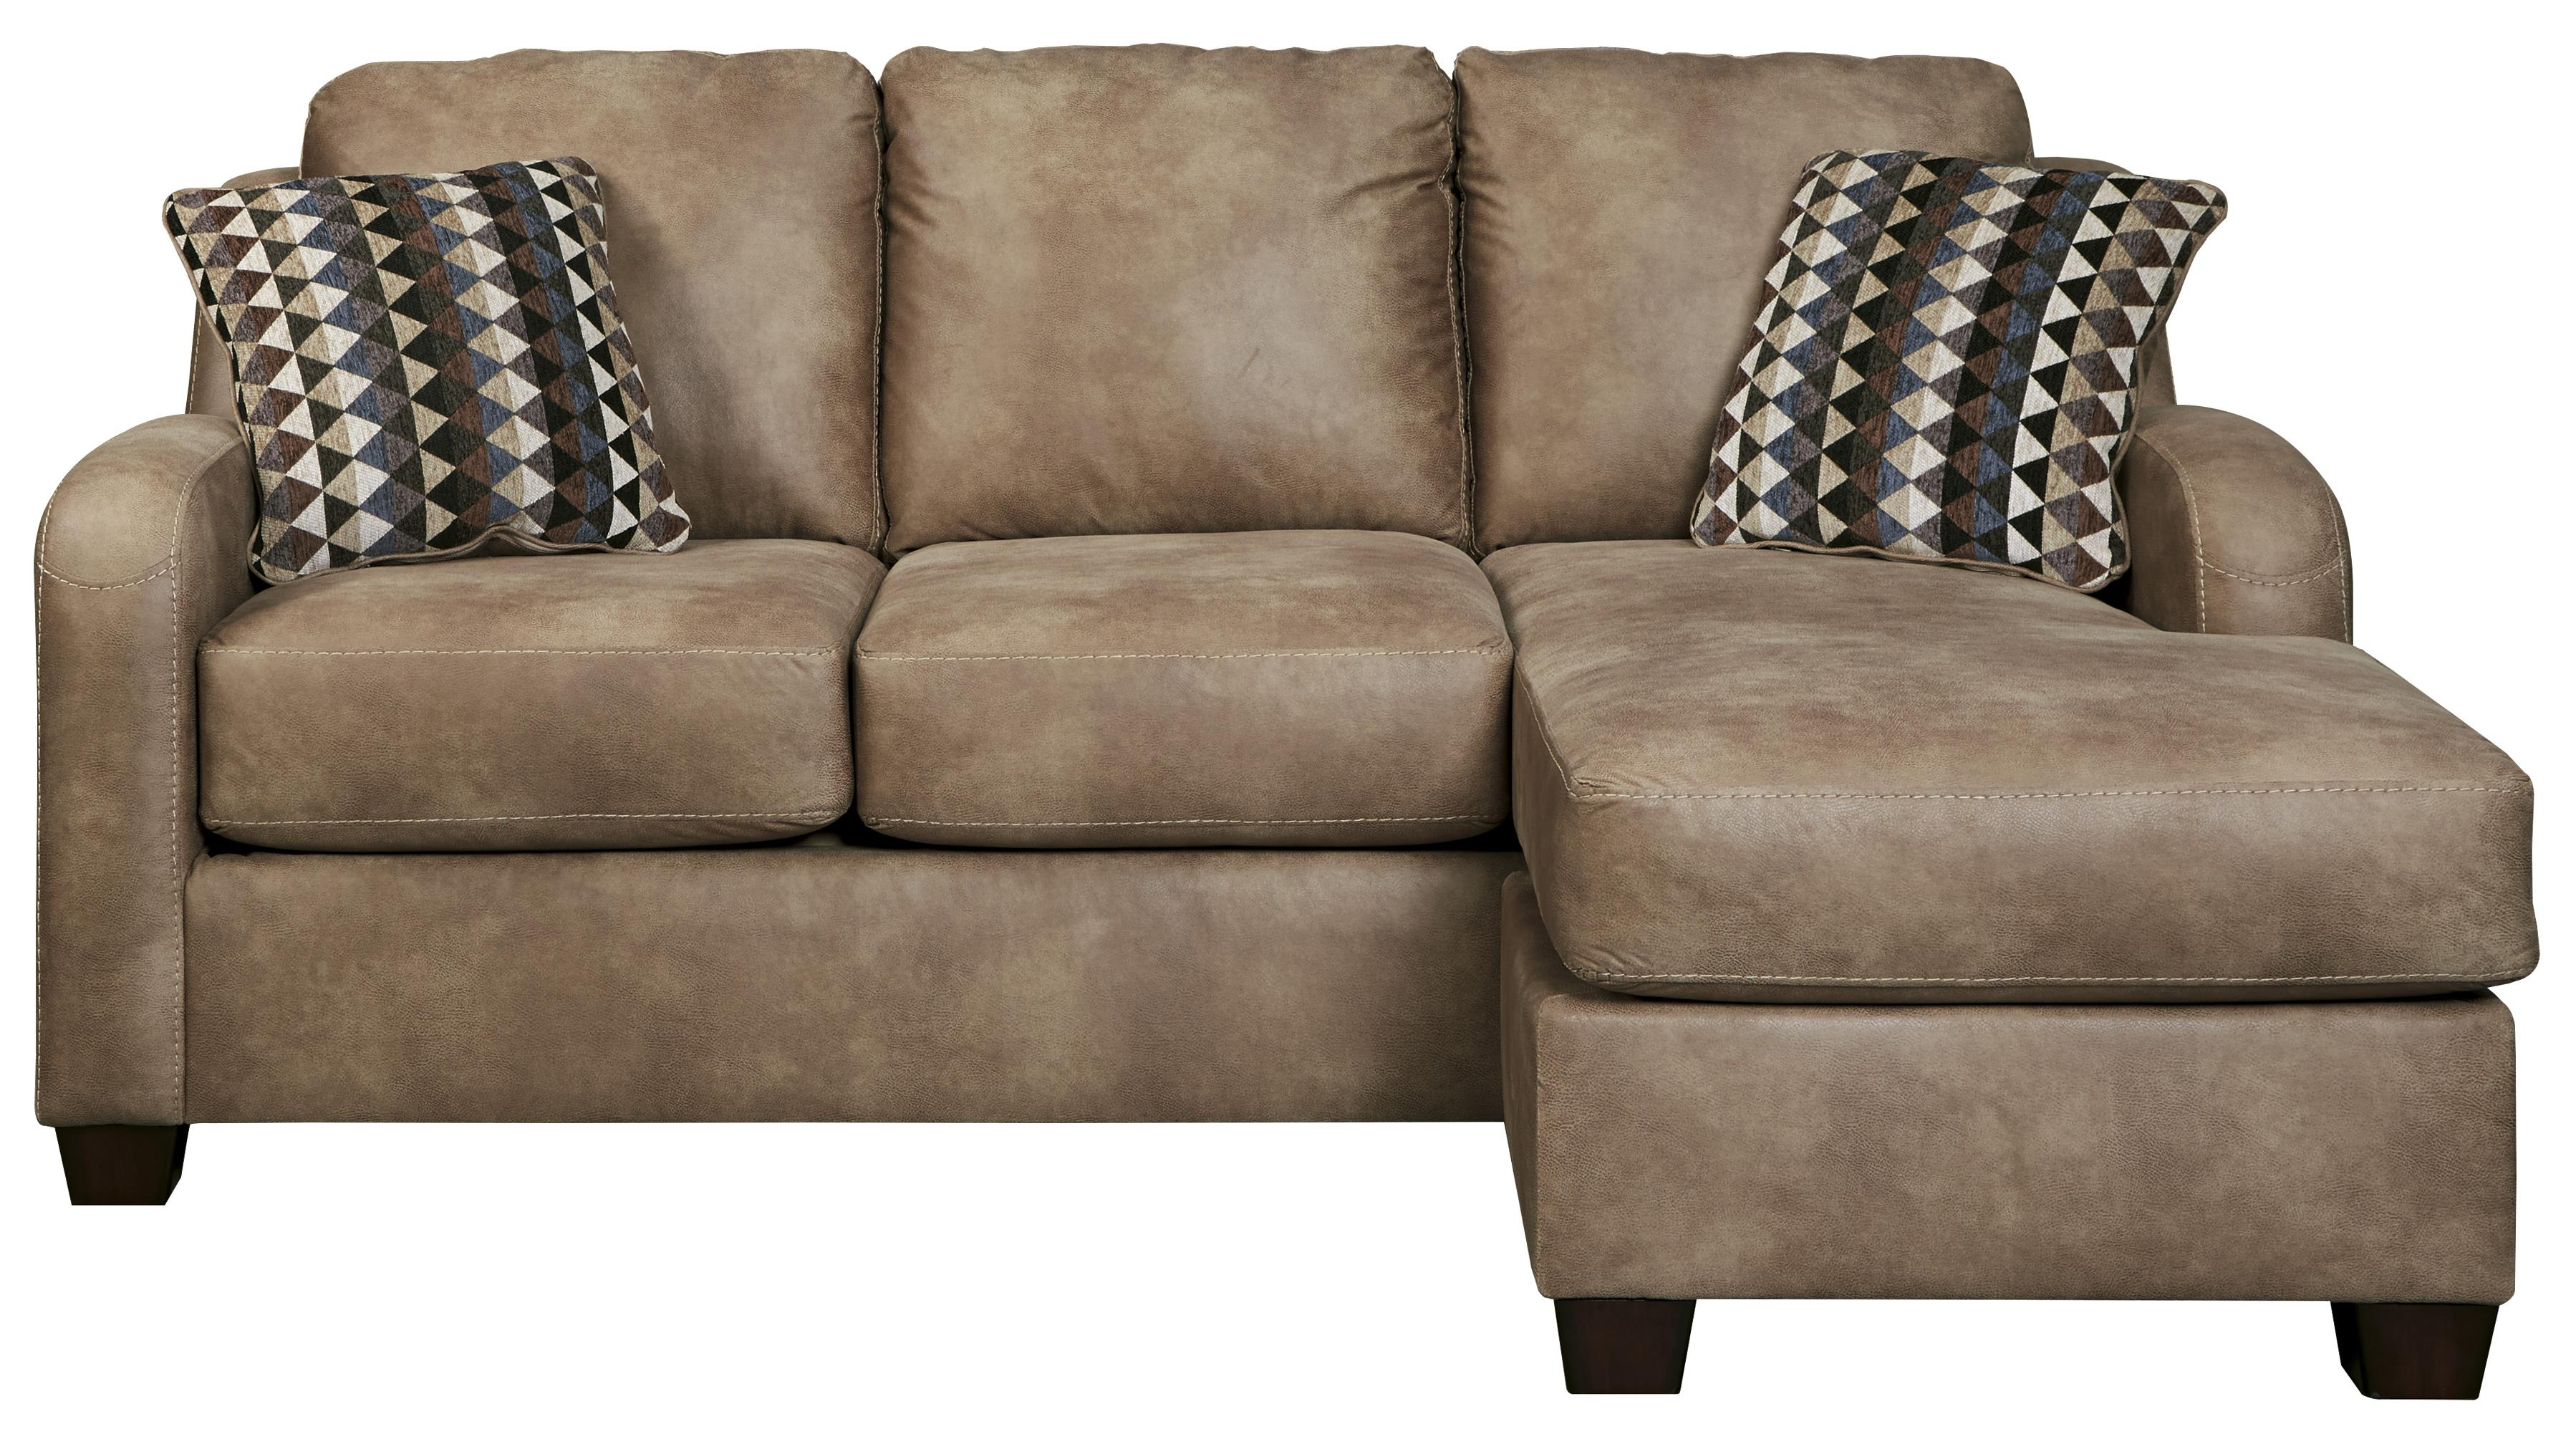 Faux Leather Queen Sofa Chaise Sleeper With Memory Foam